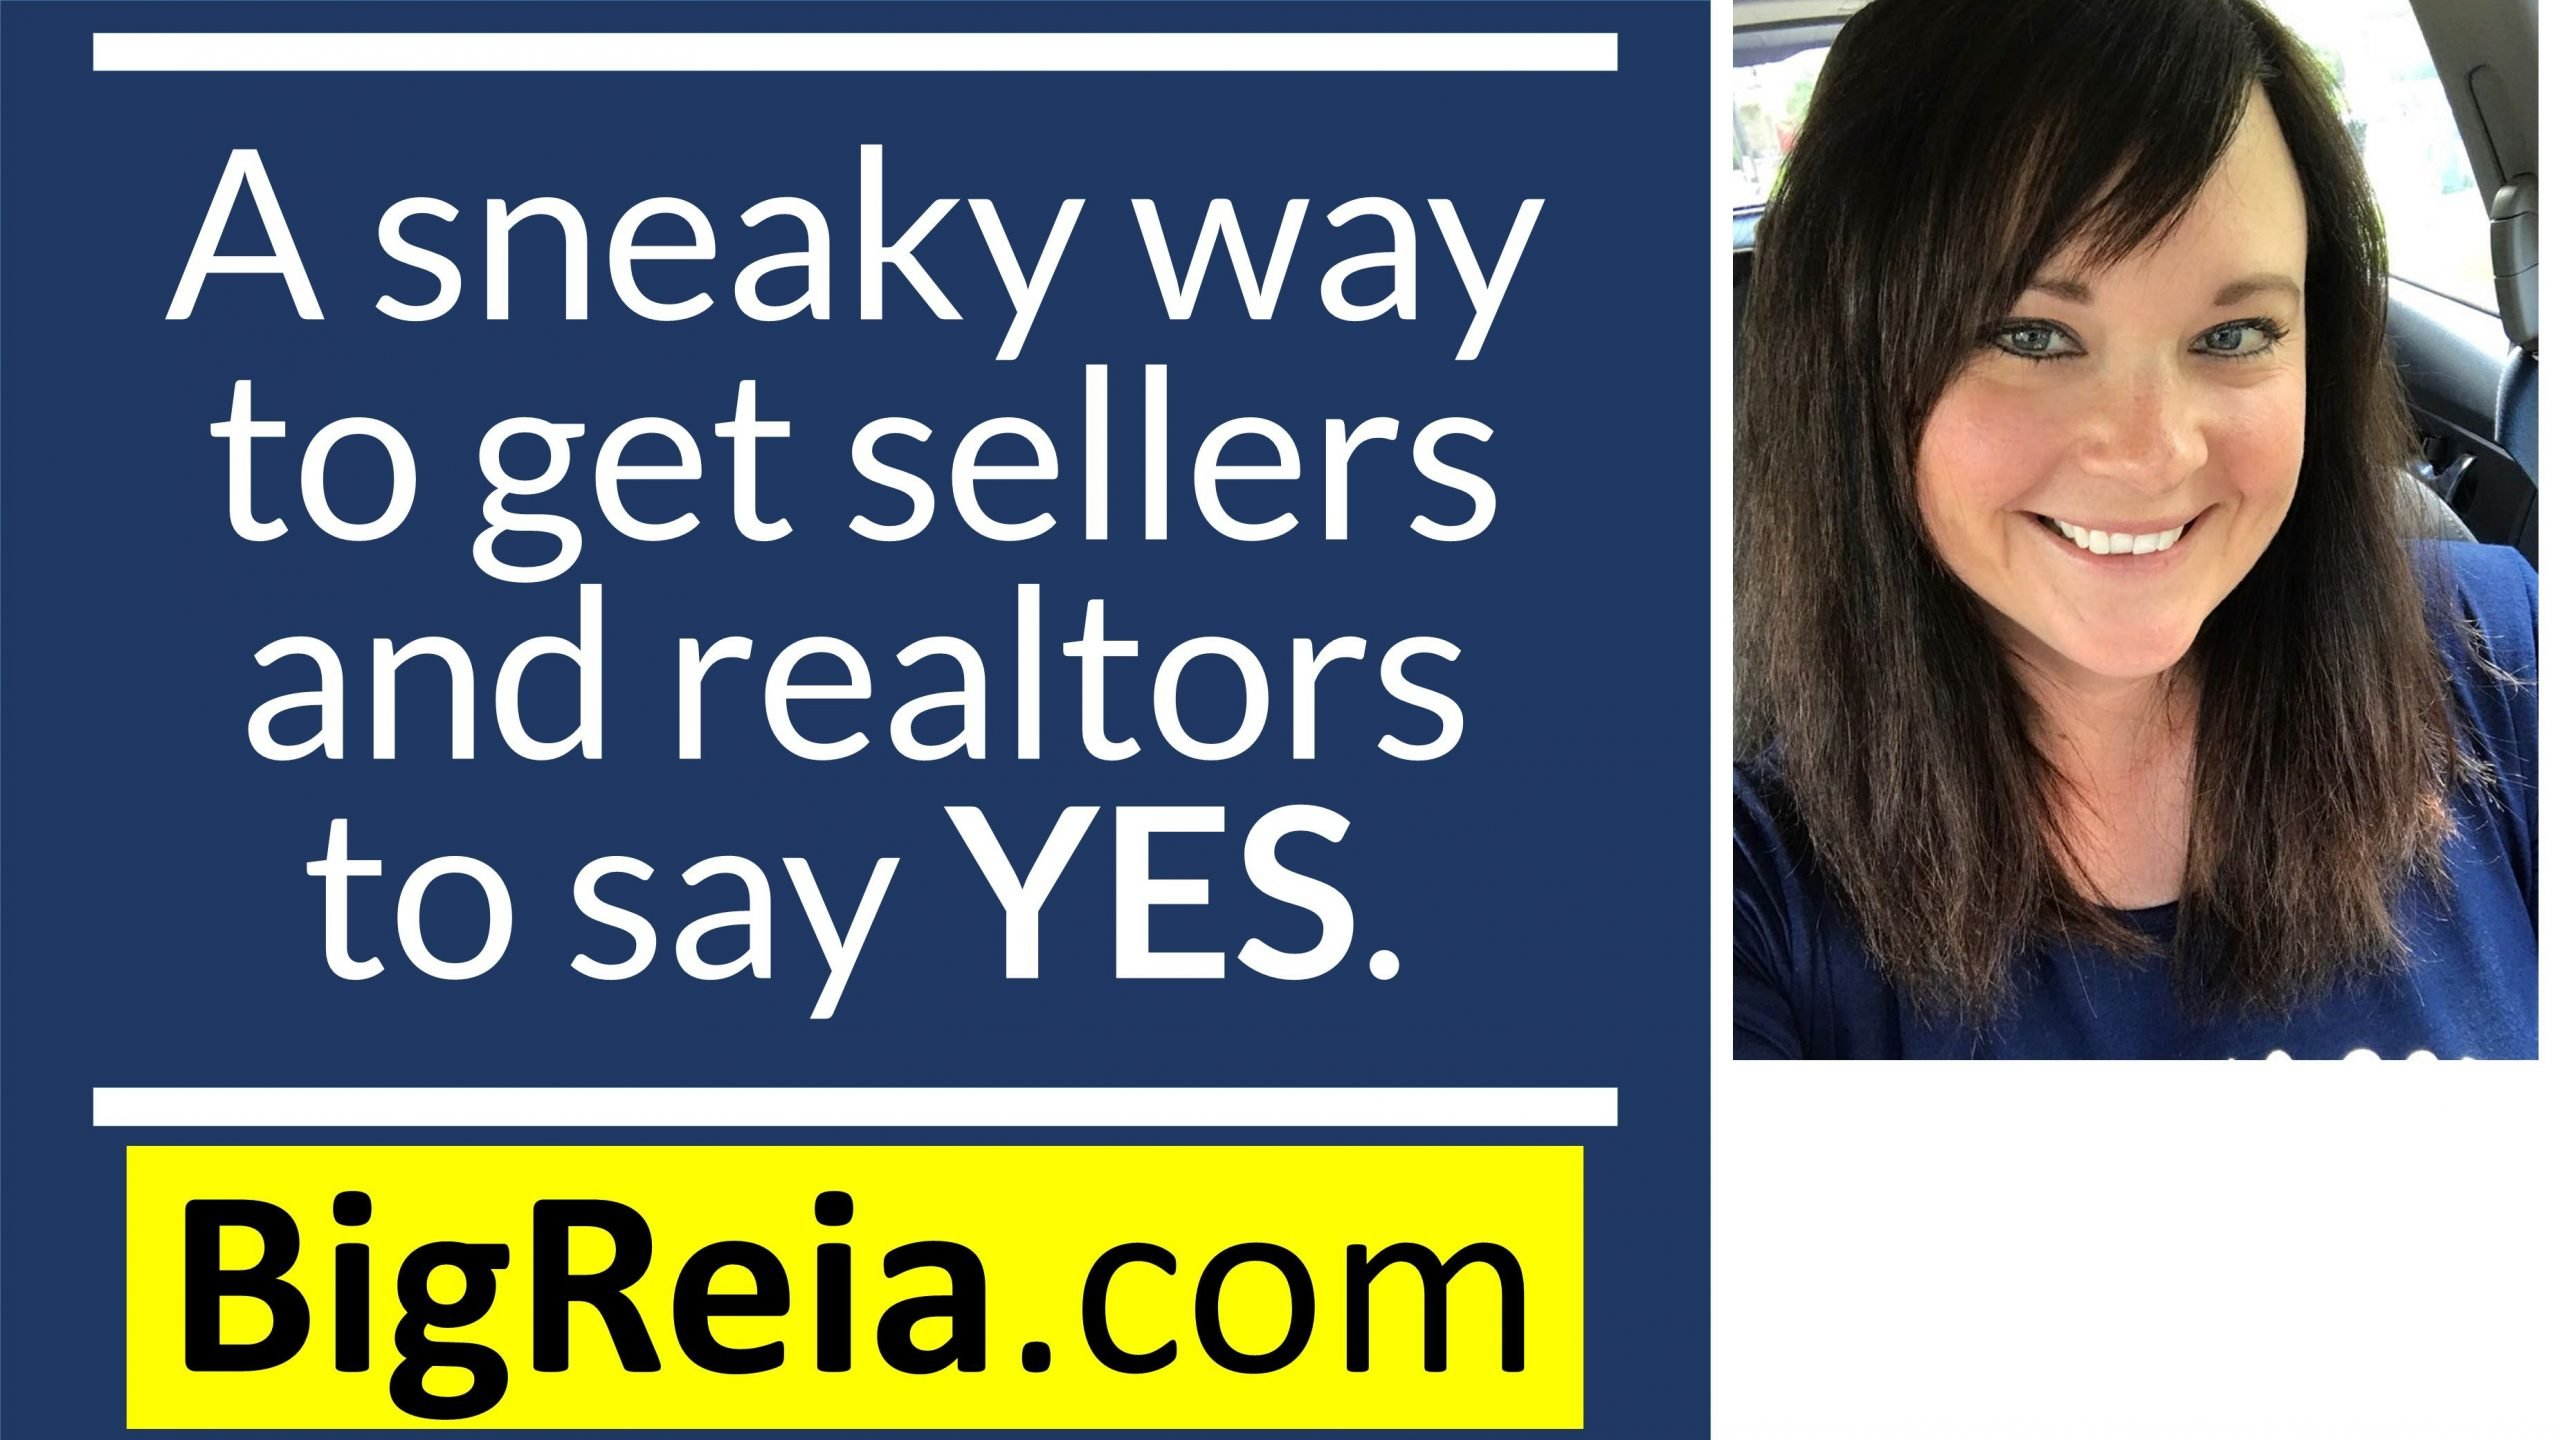 A sneaky way to get sellers to say yes and realtors to send you lease option deals, all day yall.